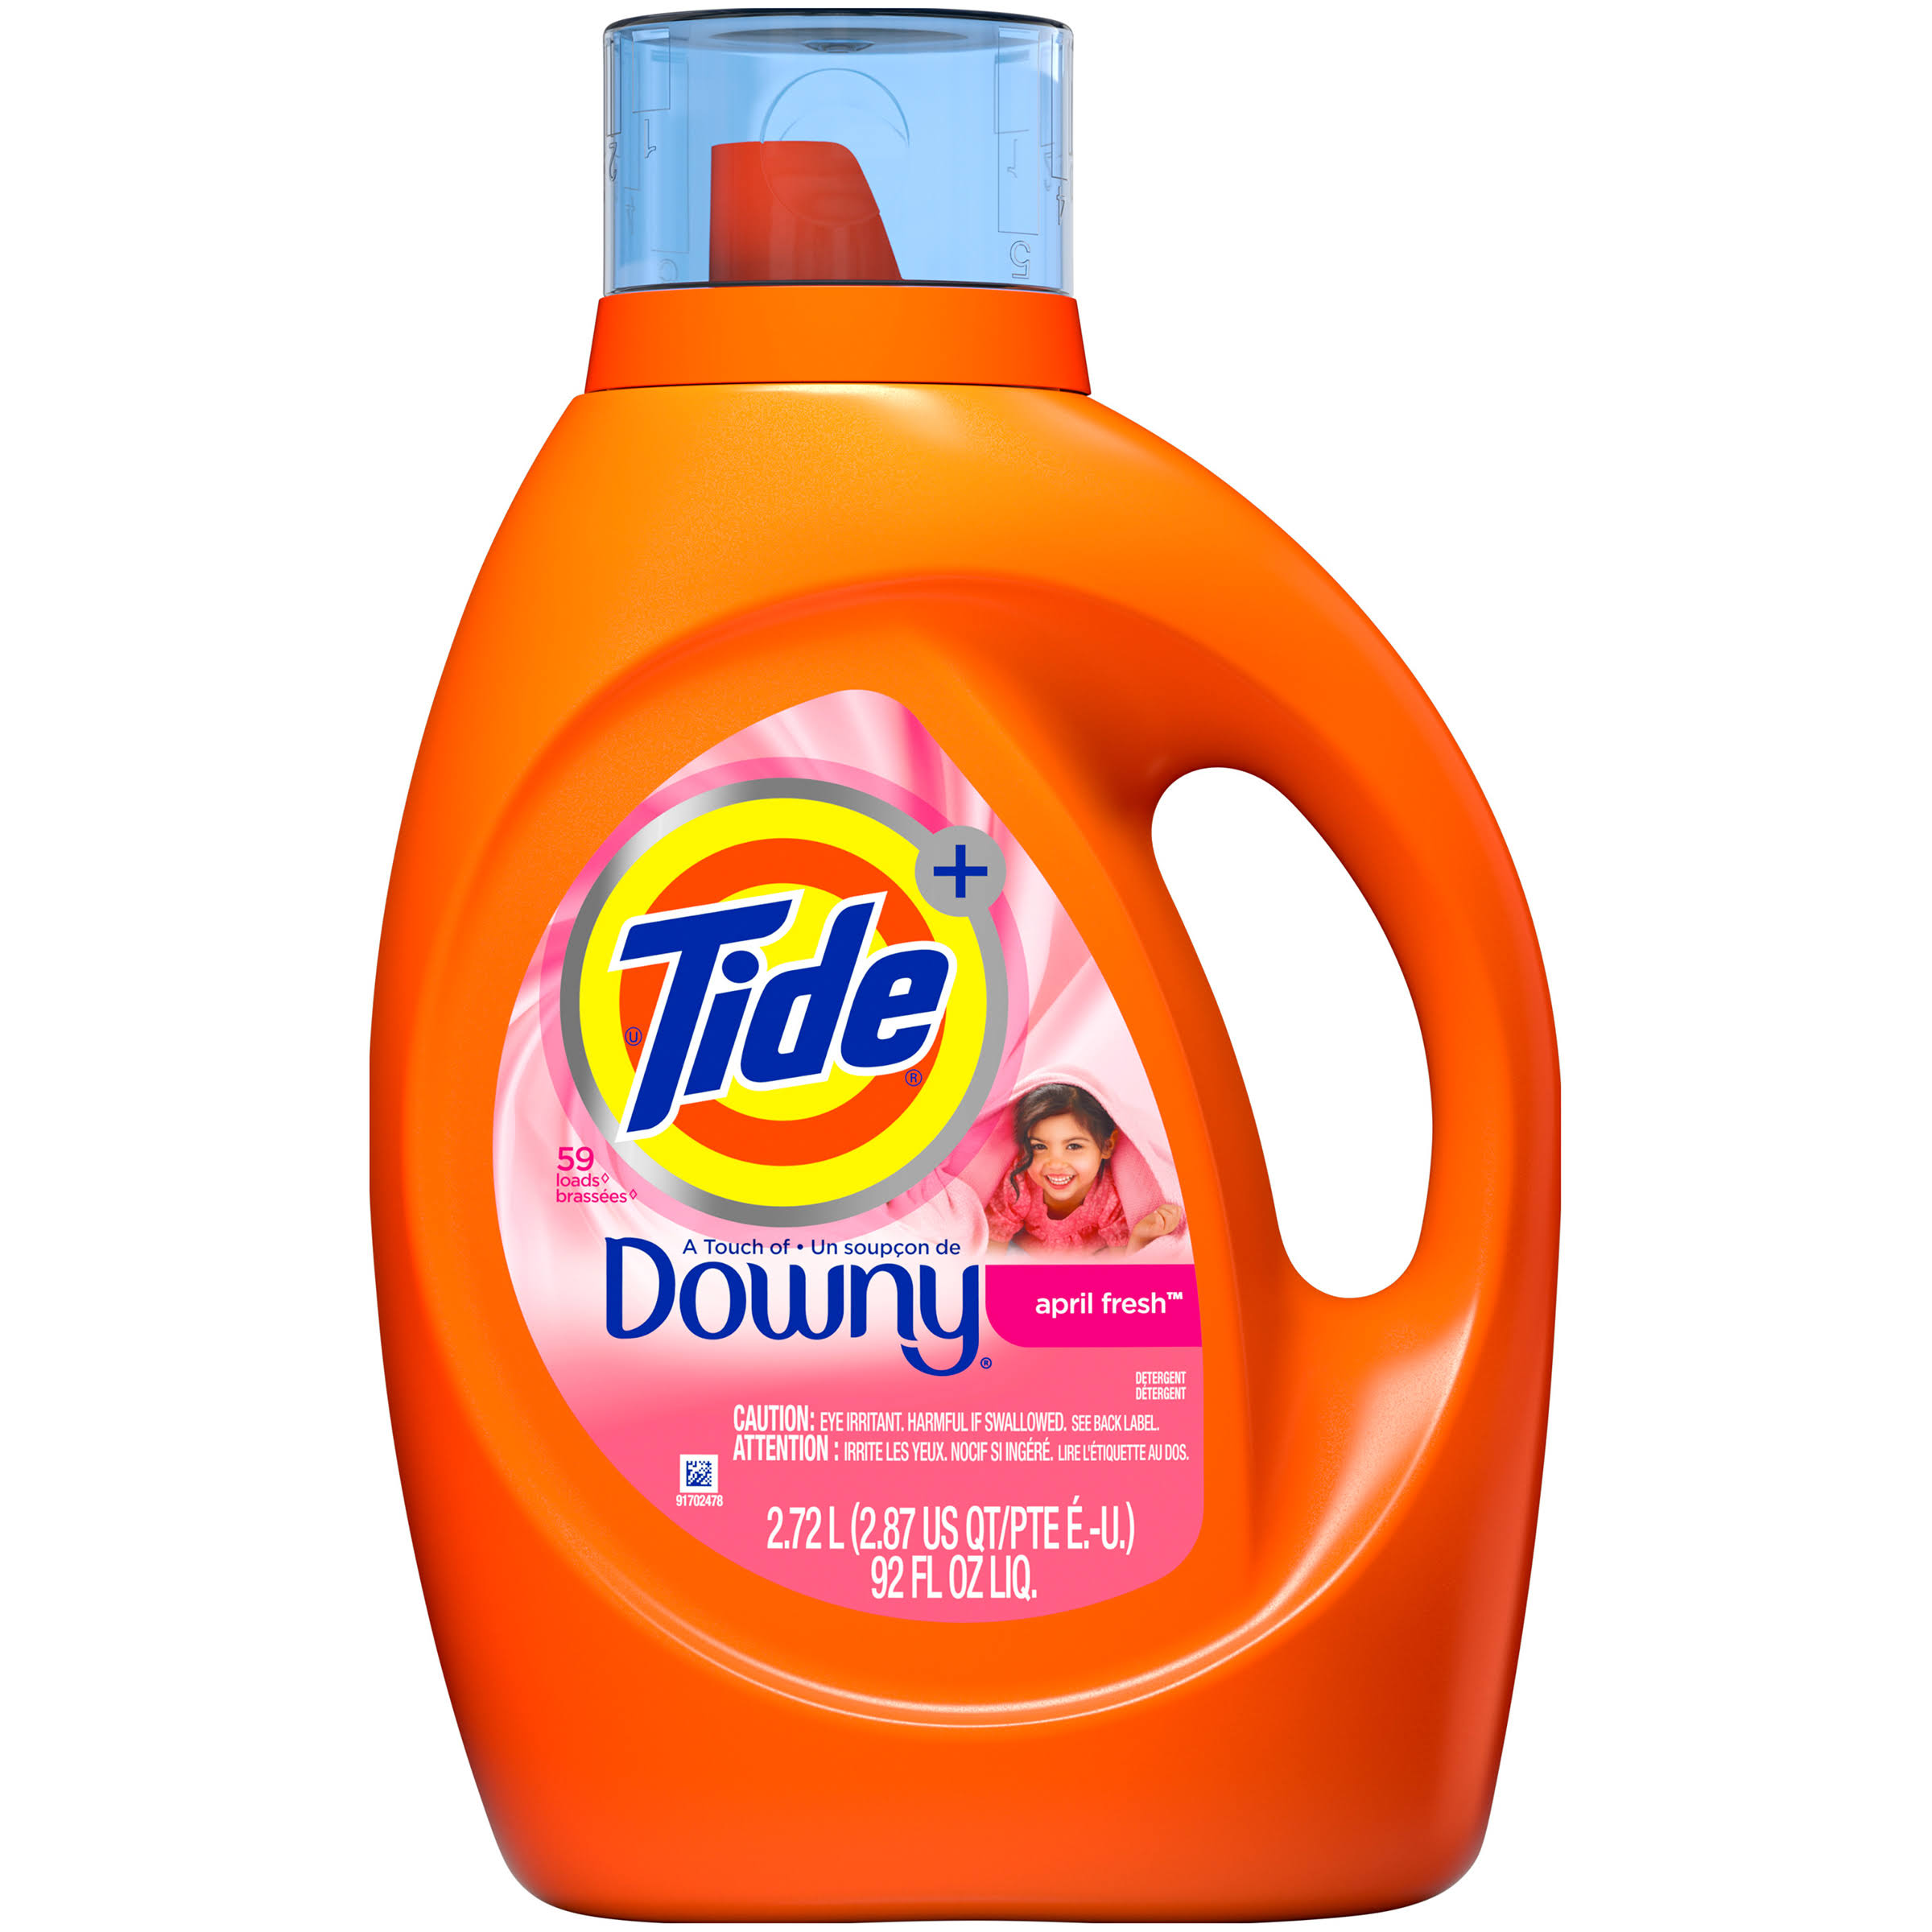 Tide Plus a Touch of Downy Liquid Laundry Detergent - April Fresh Scent, 92oz